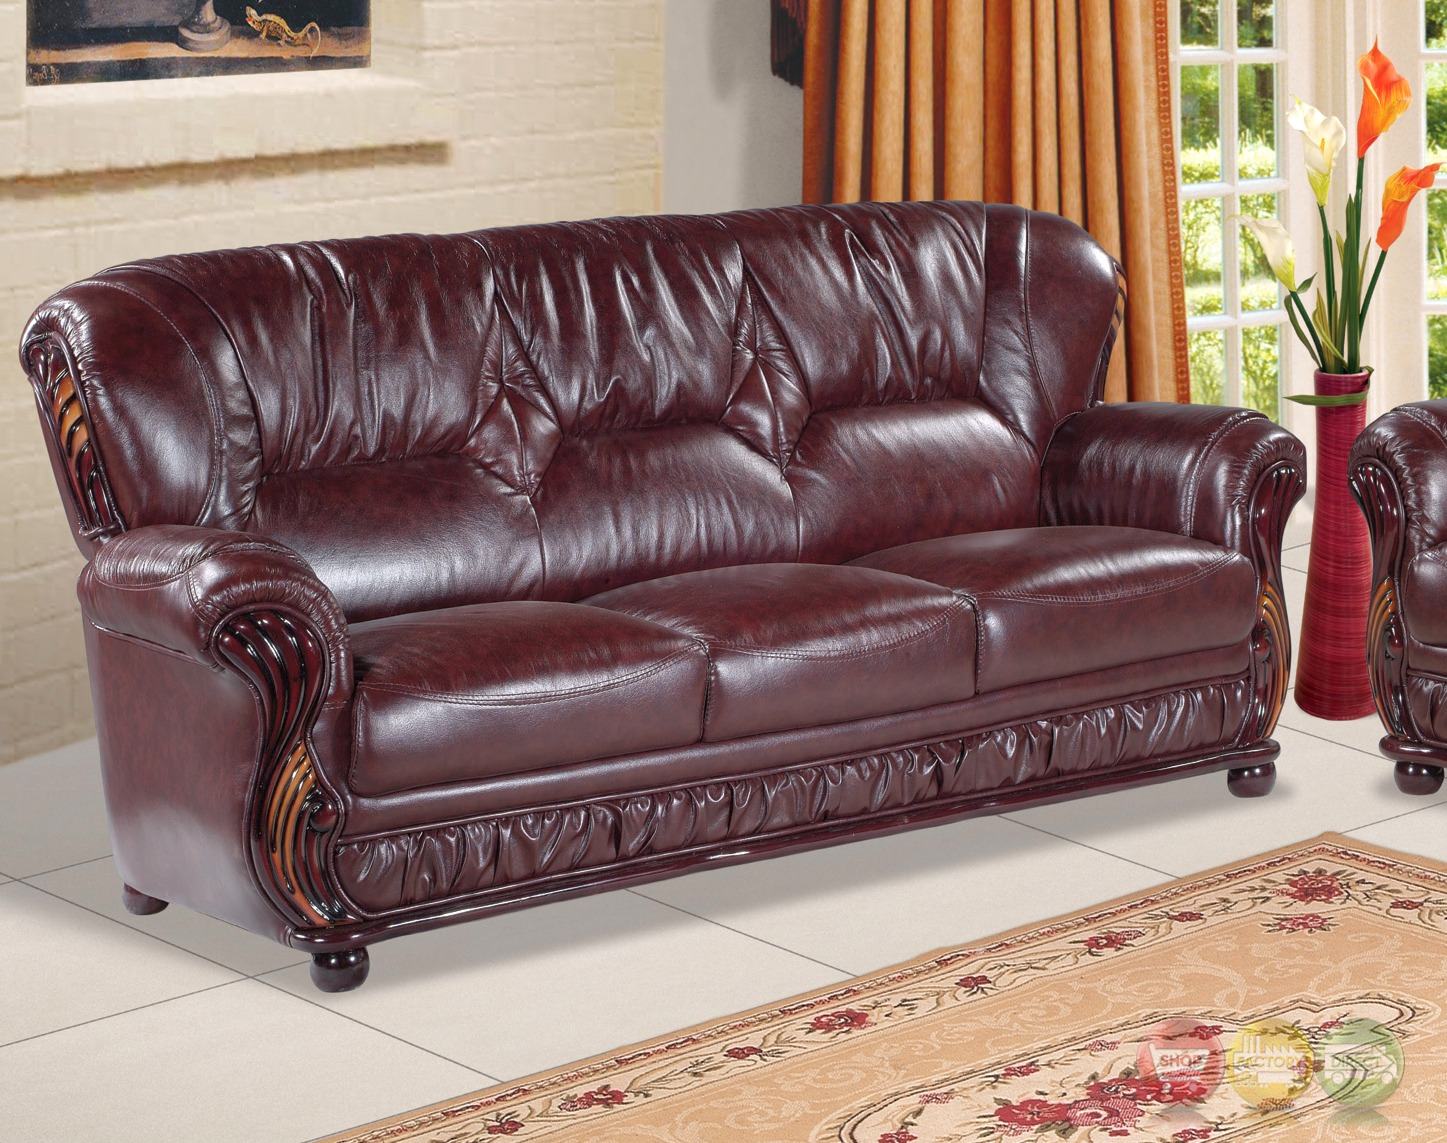 Mina Burgundy Leather Italian Sofa With Wood Accents